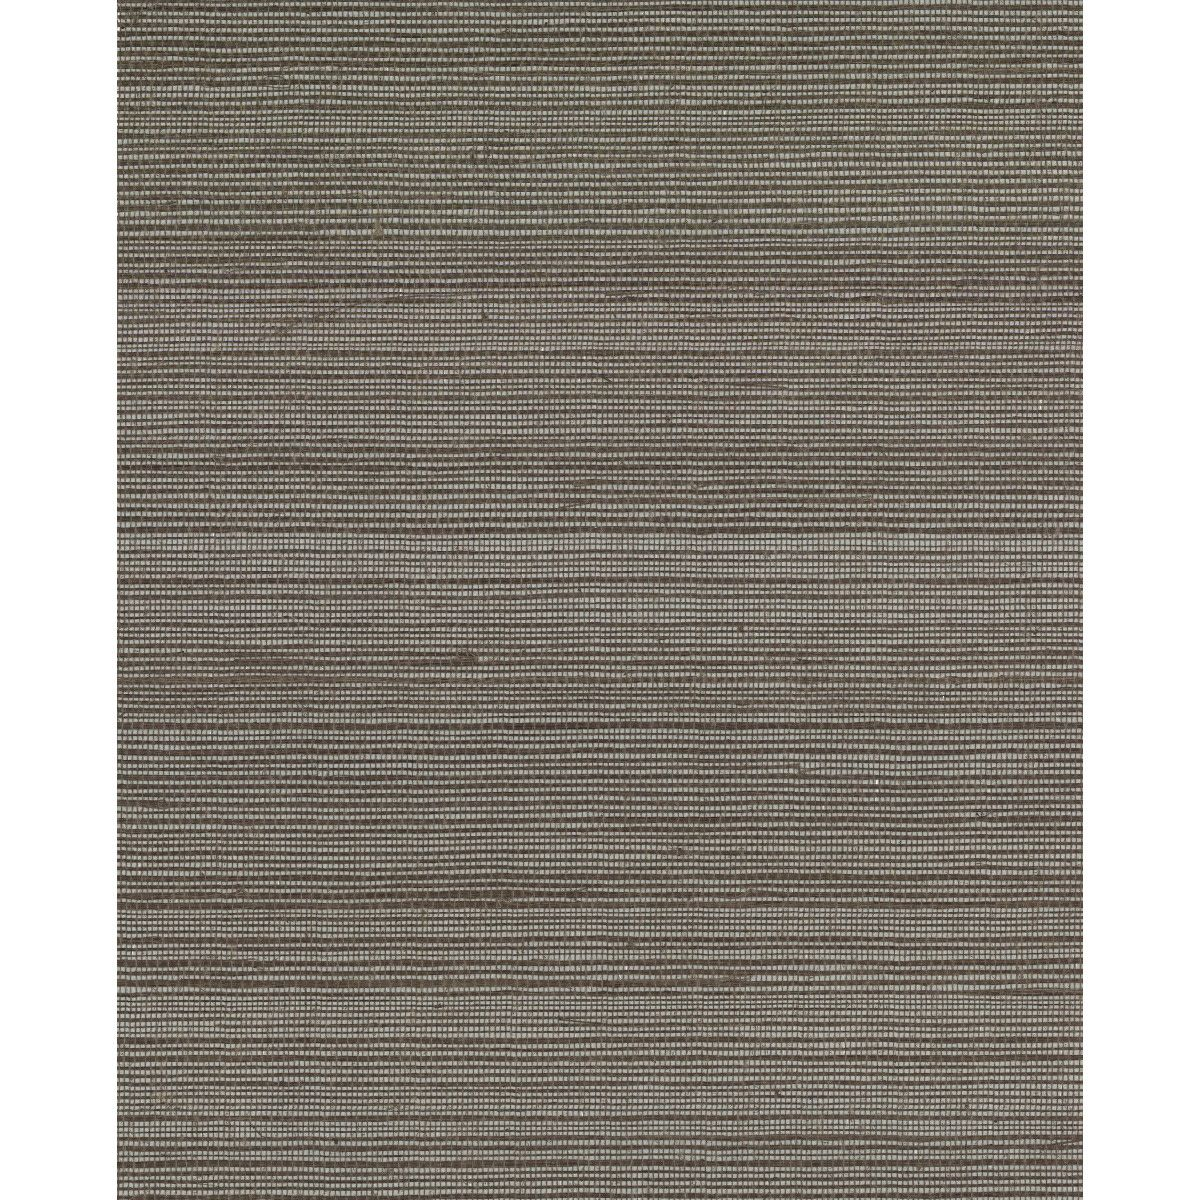 This wallcovering is hand crafted with natural materials